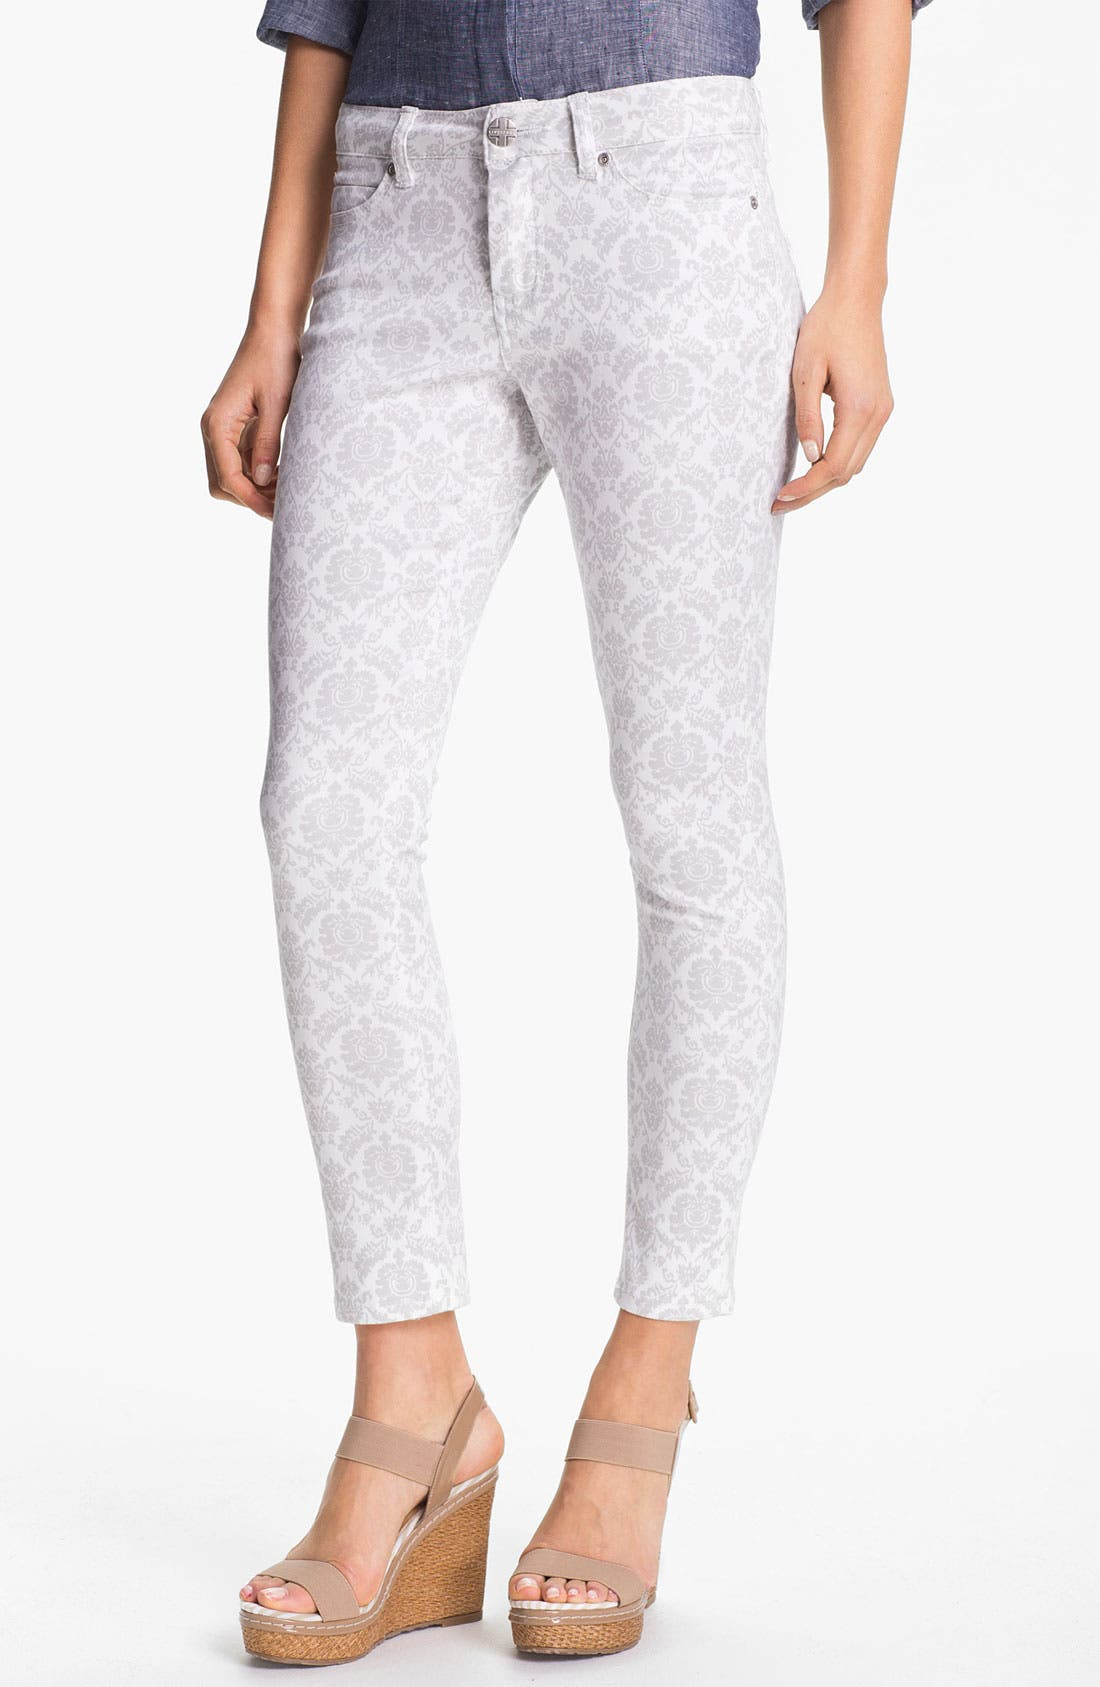 Main Image - Liverpool Jeans Company 'Abby' Skinny Print Ankle Jeans